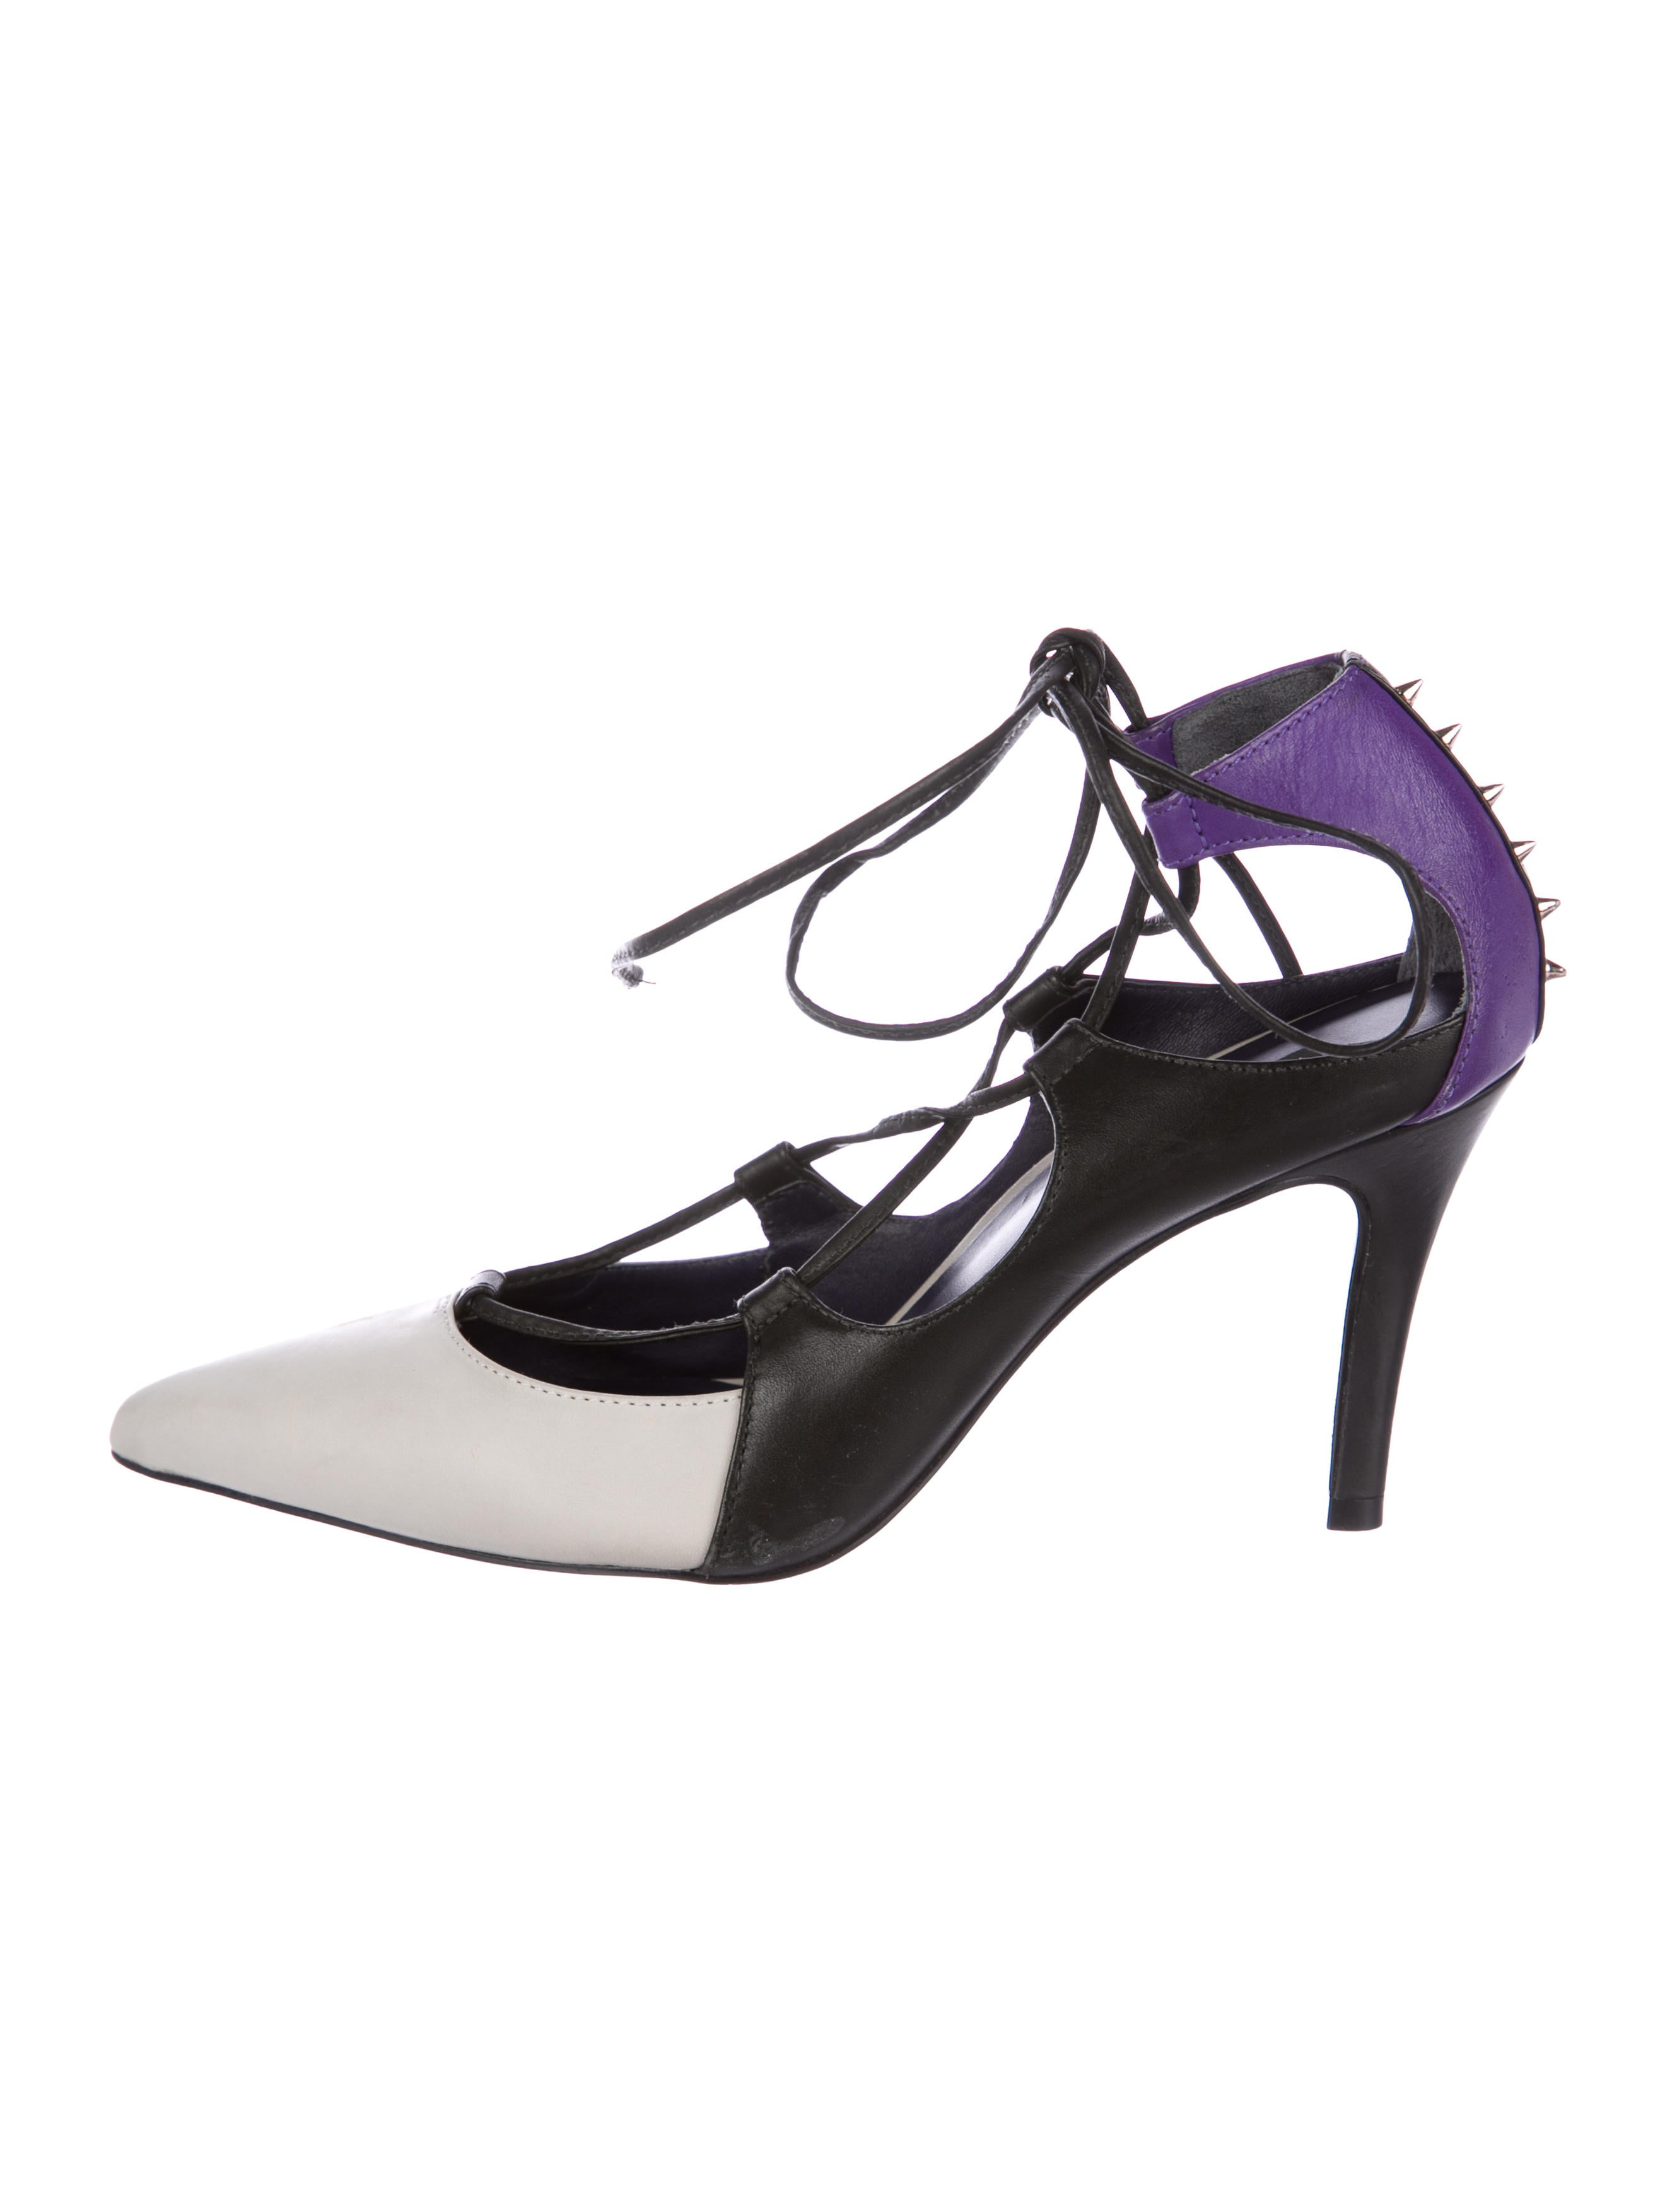 buy cheap 2014 new cheap sale real Ruthie Davis Leather Lace-up Pointed-Toe Color-Blocked Pumps outlet store online FTZsQDDi